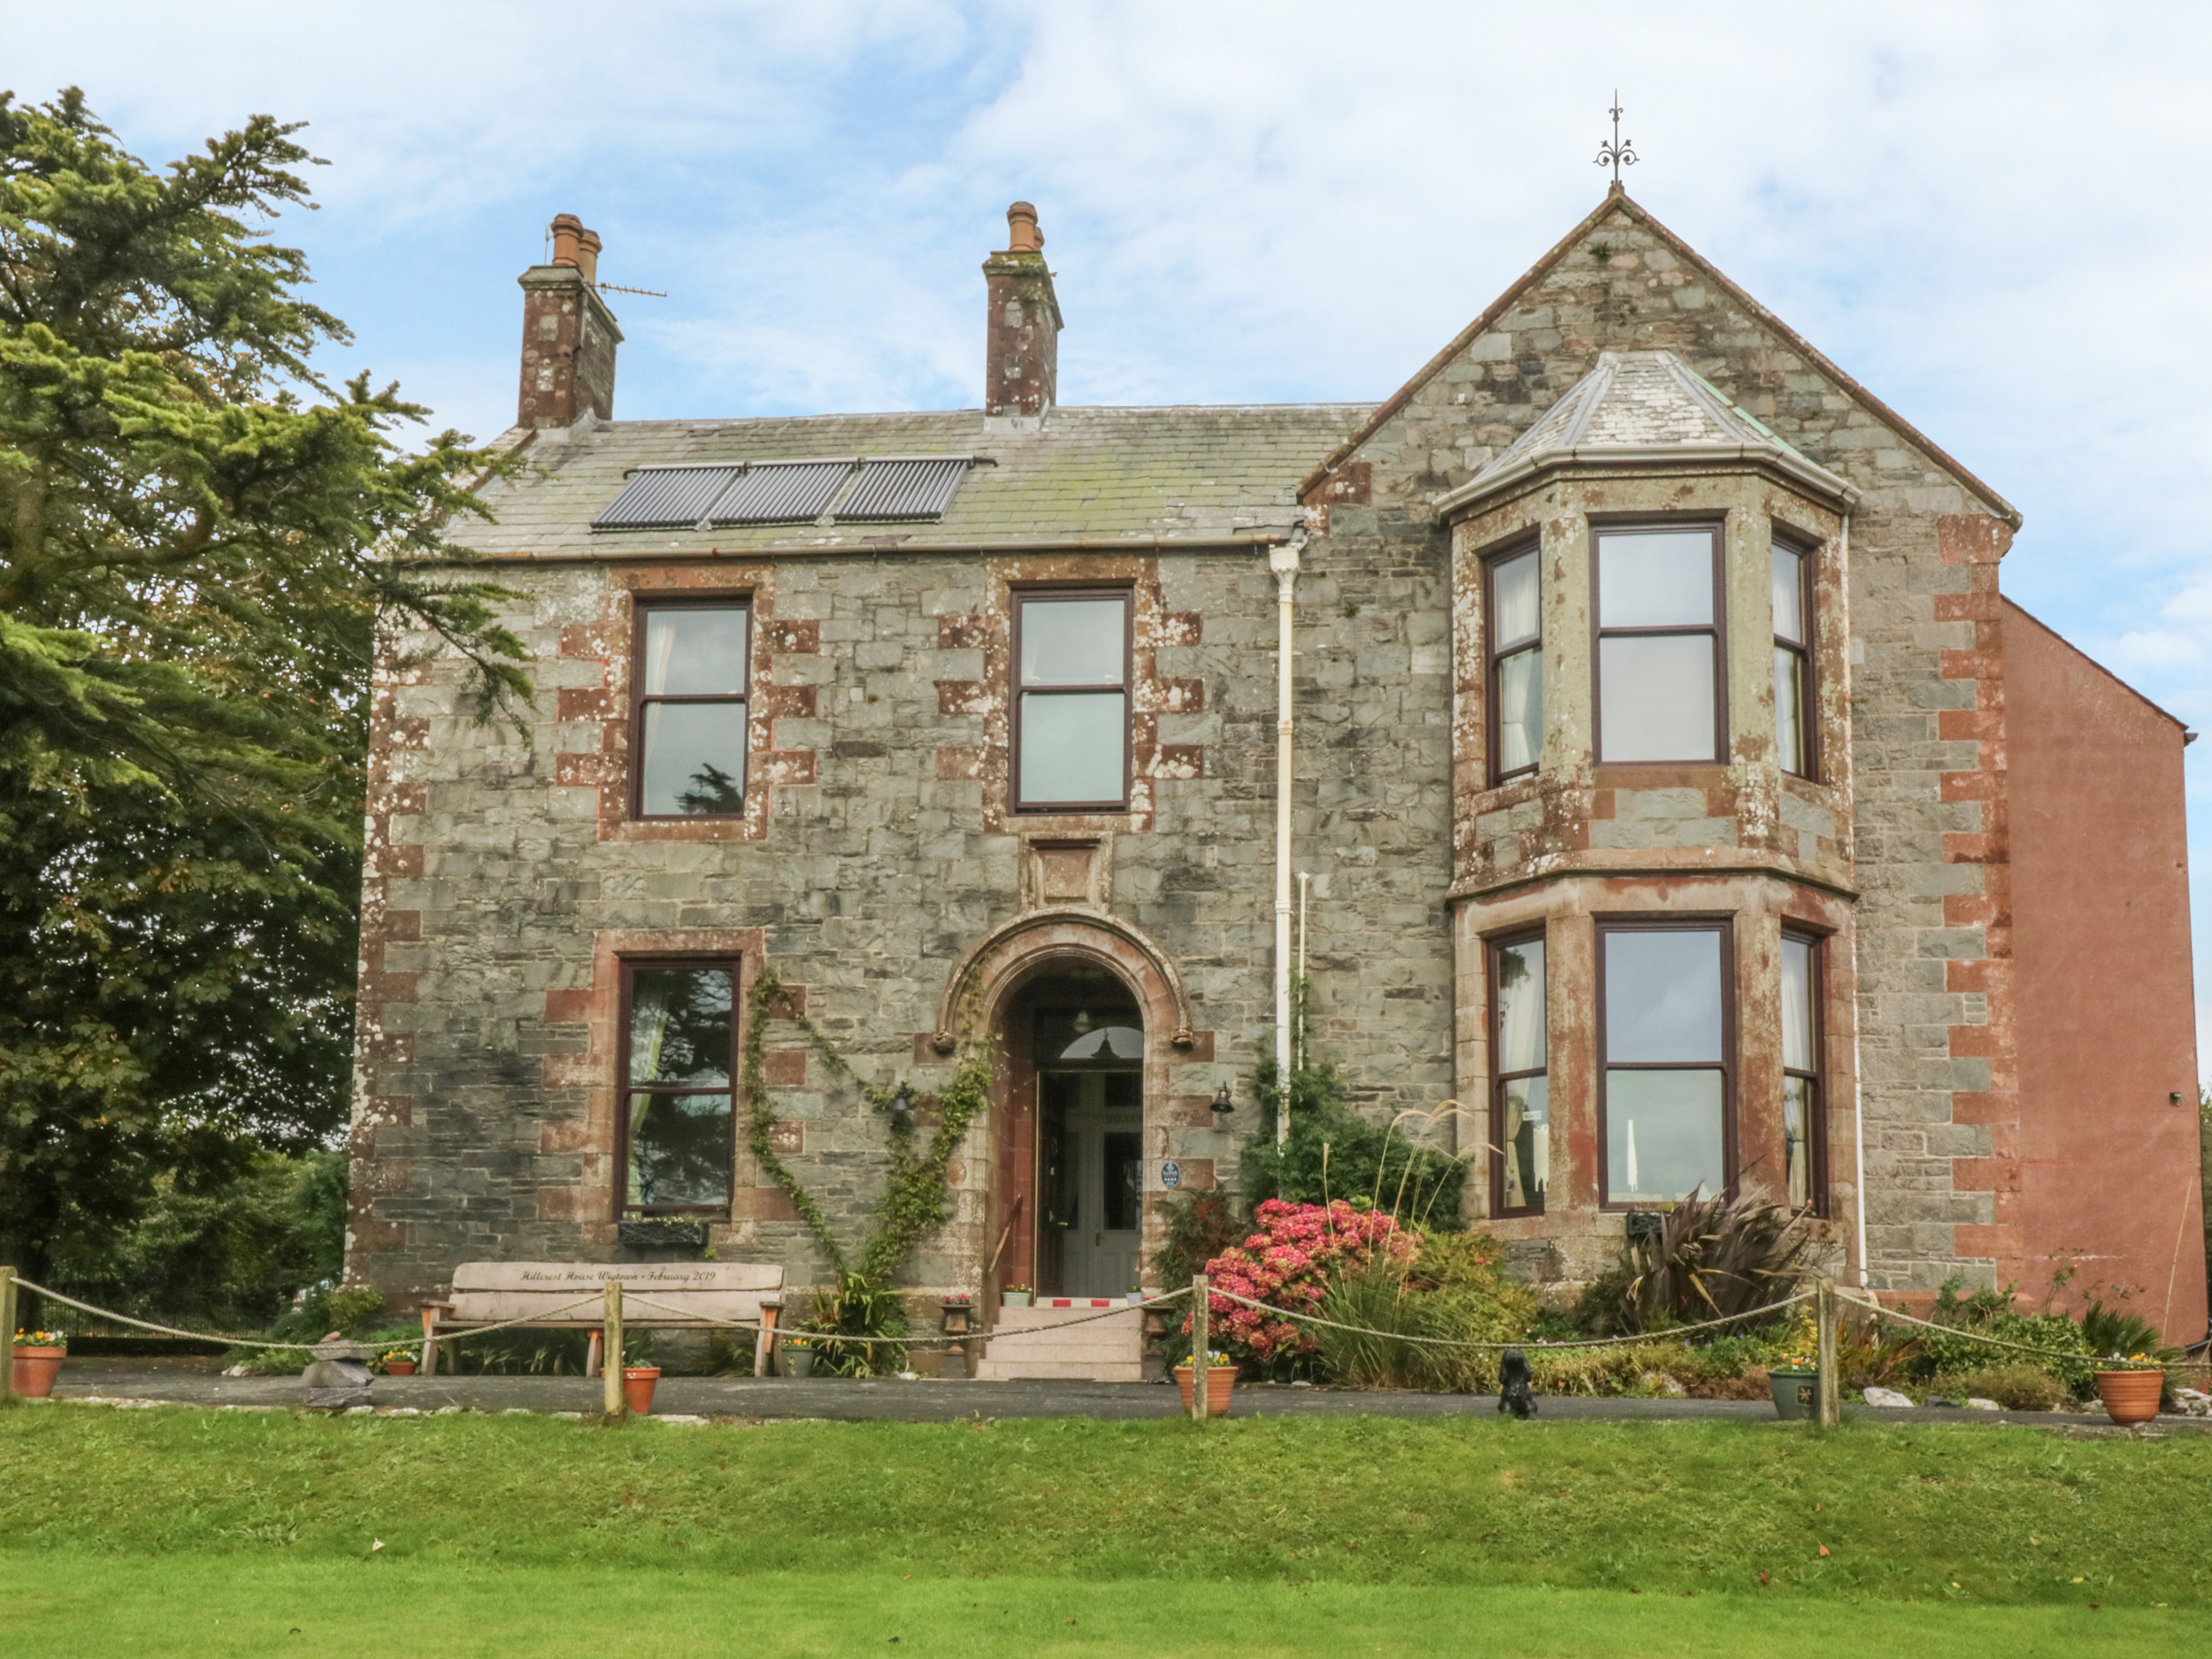 Hillcrest, Ayrshire and Dumfries & Galloway